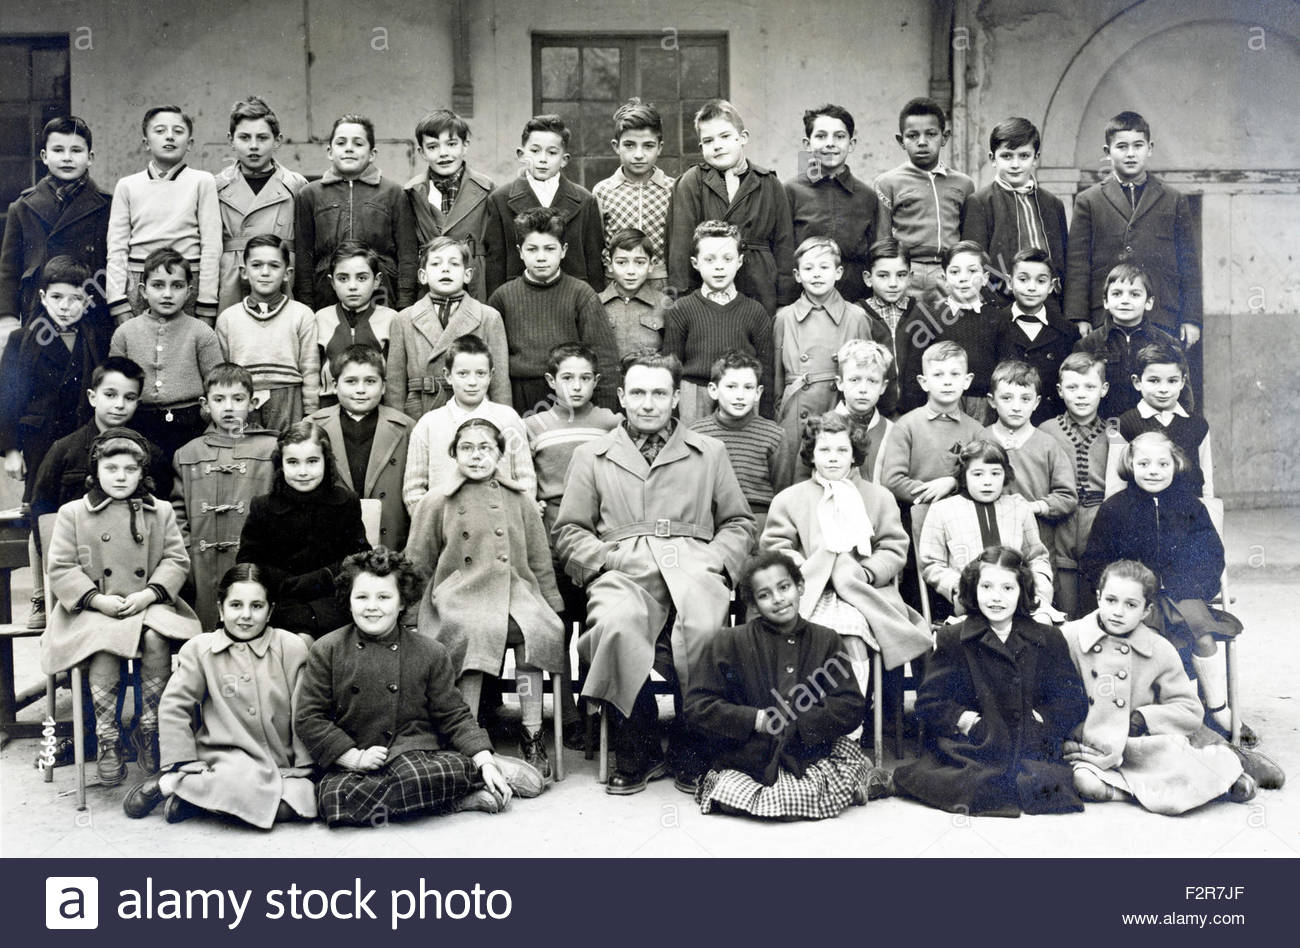 multi cultural elementary school group France year 1954 1955 - Stock Image